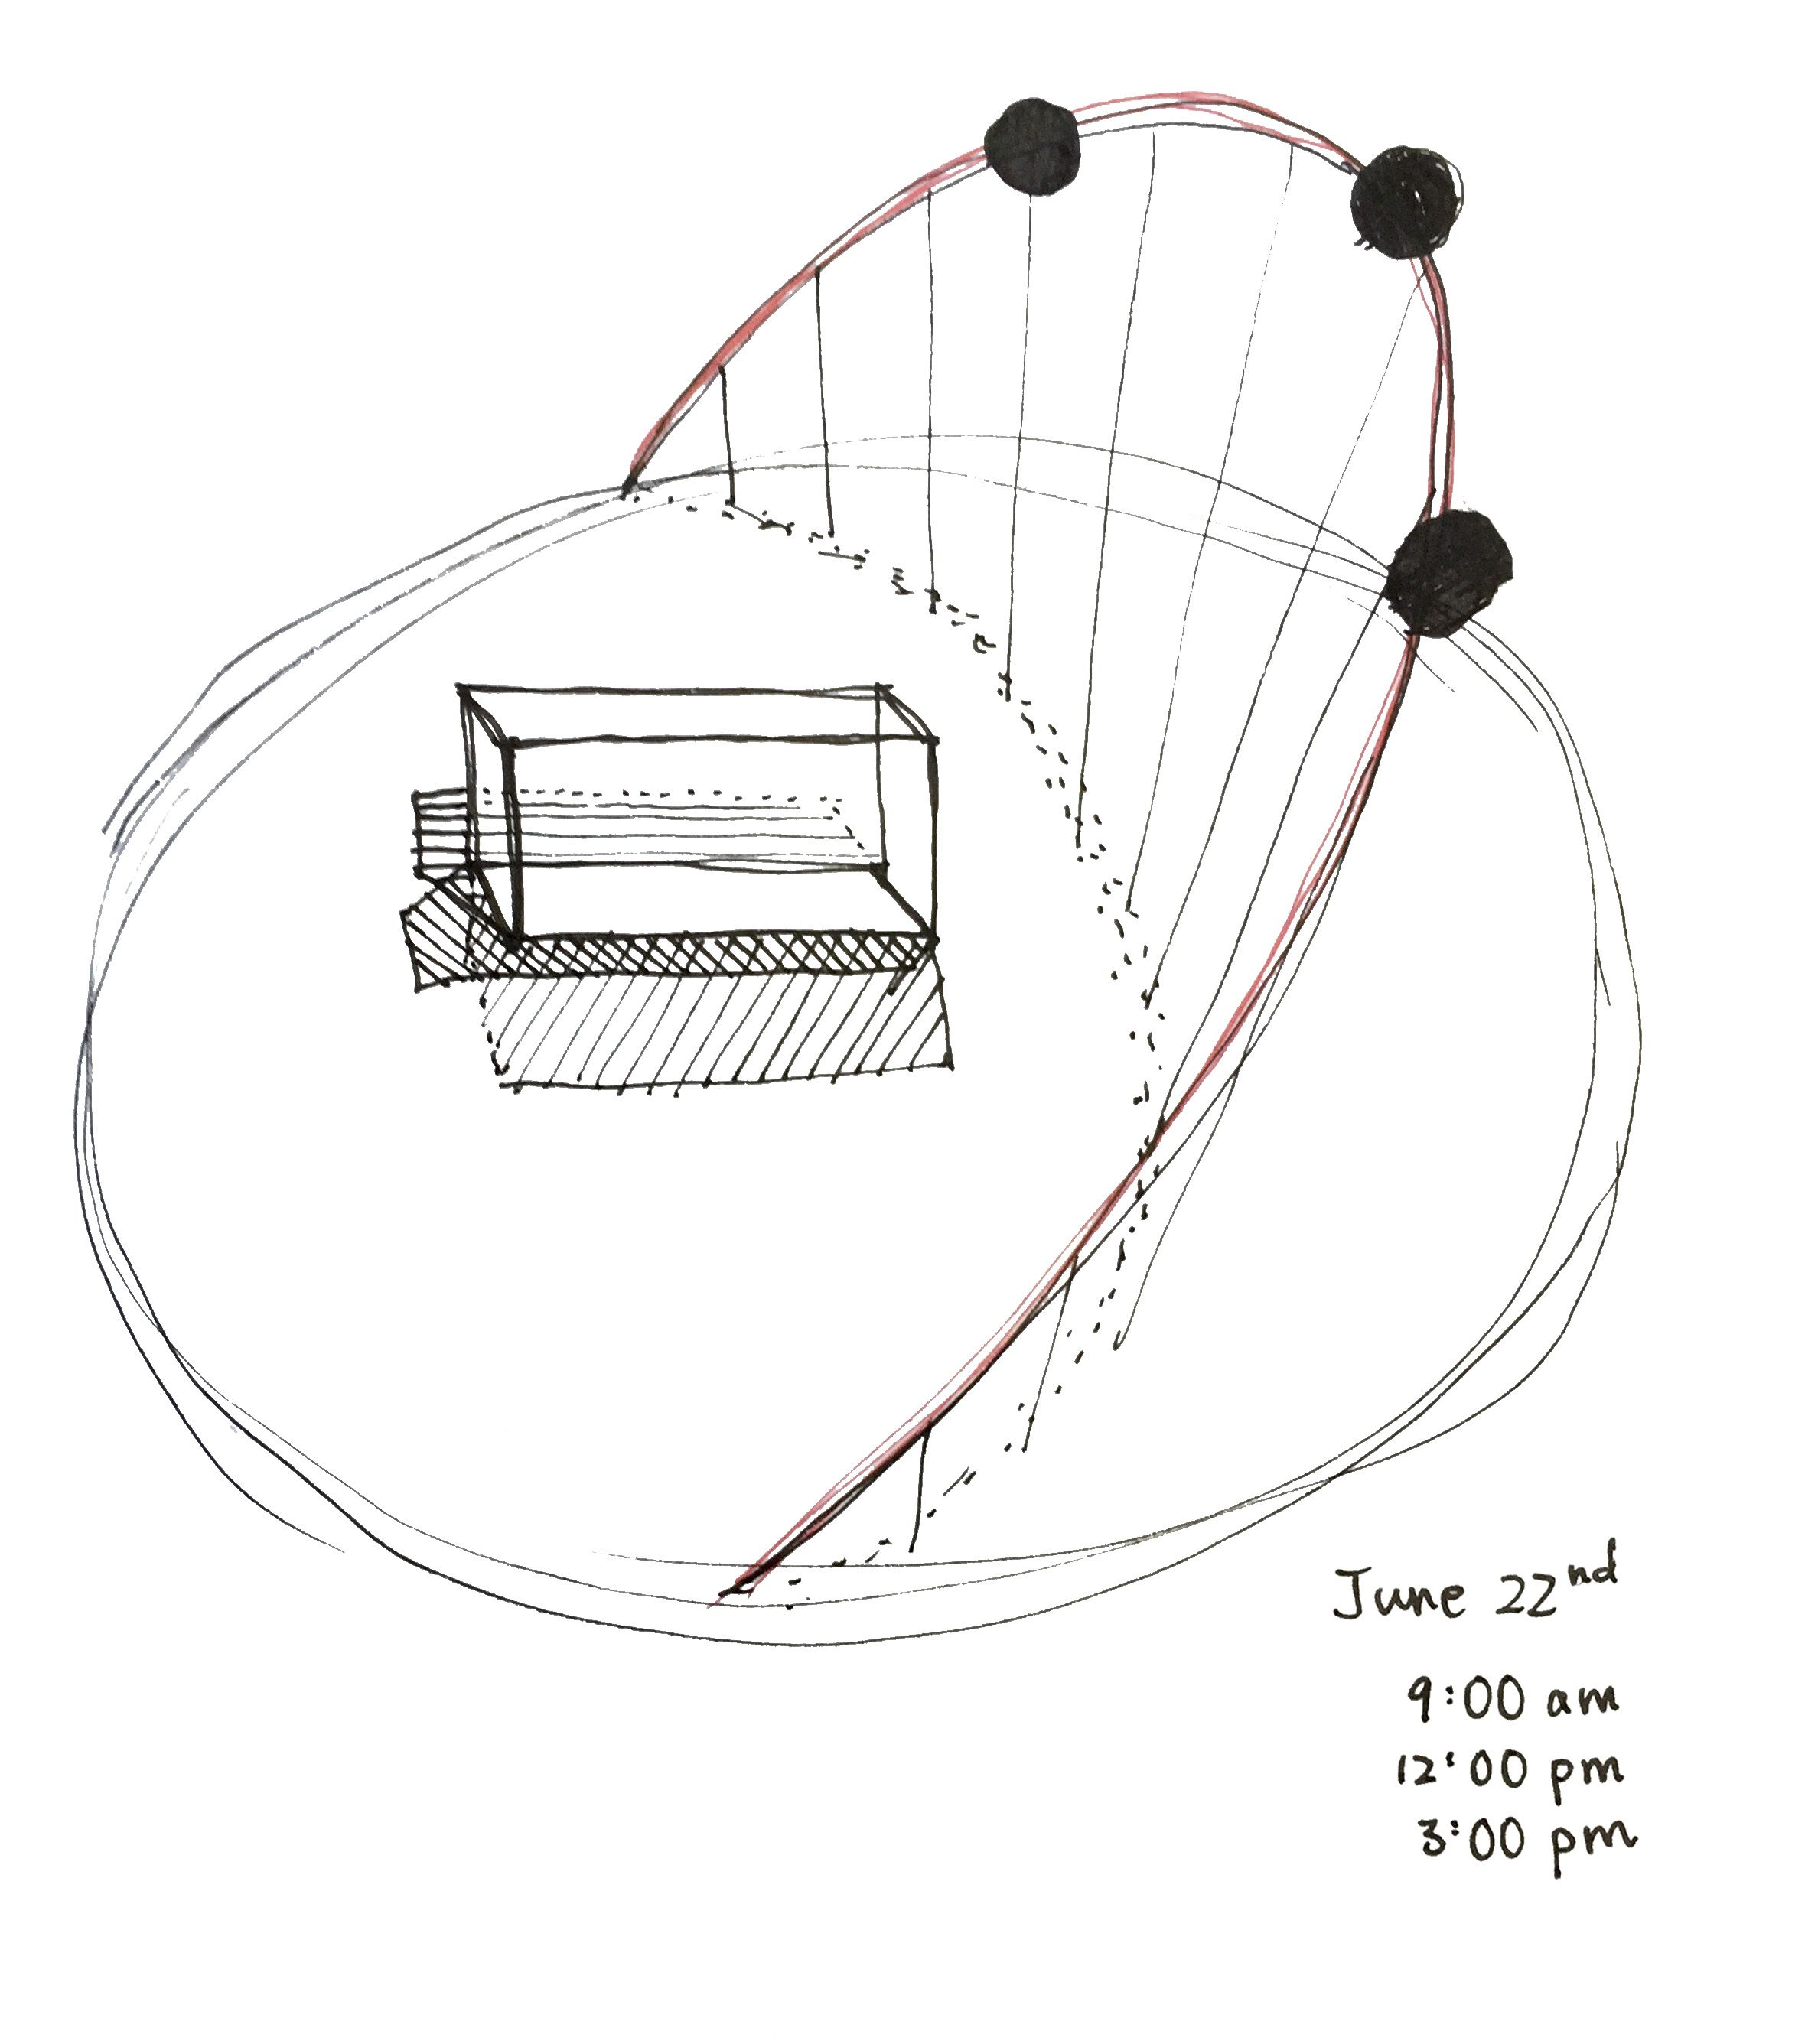 University of versailles science library diagram of sun path in university of versailles science library diagram of sun path in june kellyli 48105 pooptronica